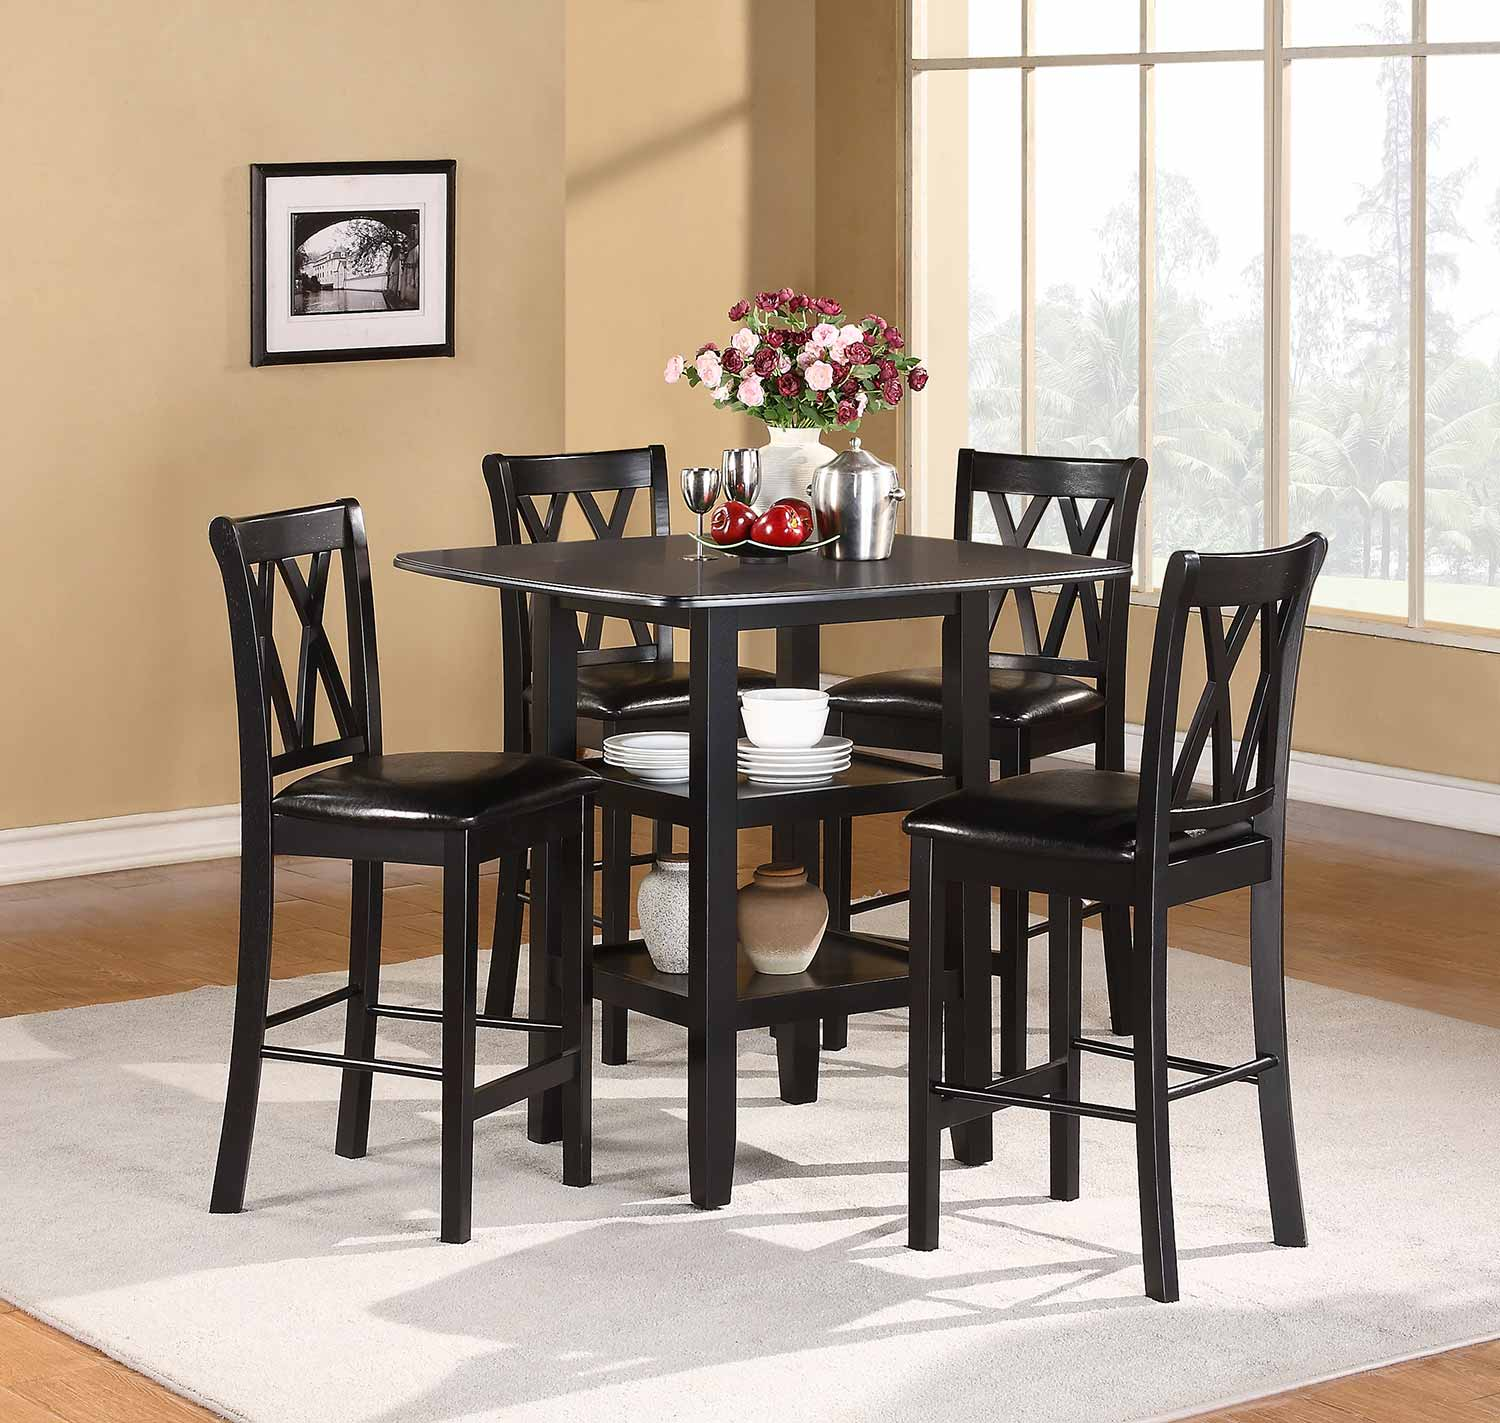 homelegance norman 5-piece pack counter height set - black 2514bk